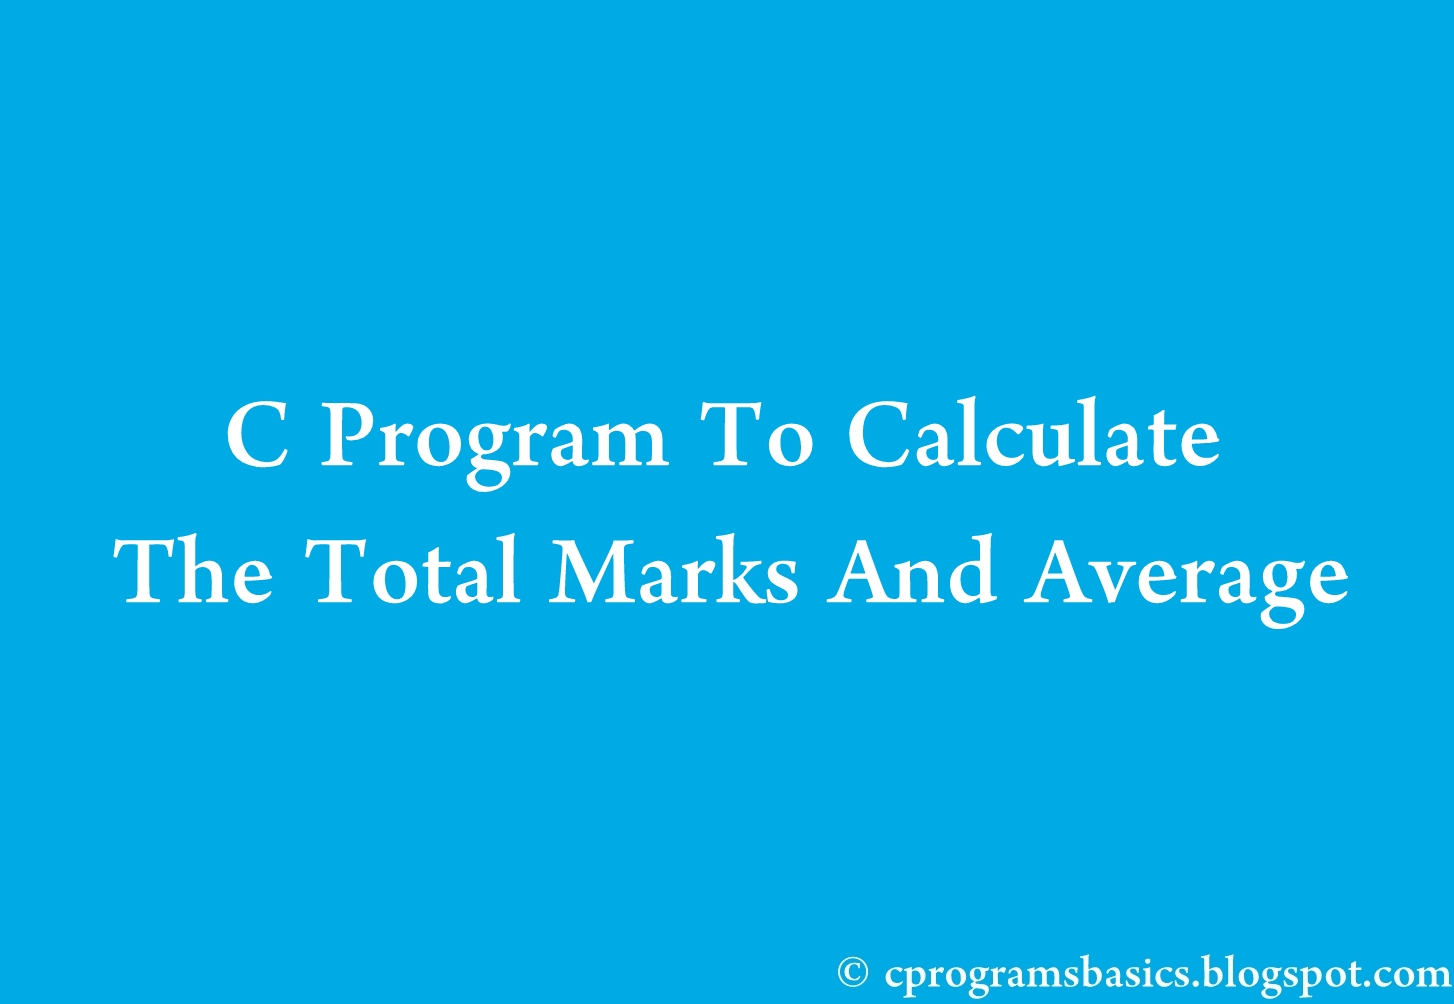 C Program To Find The Total And Average Of The Marks